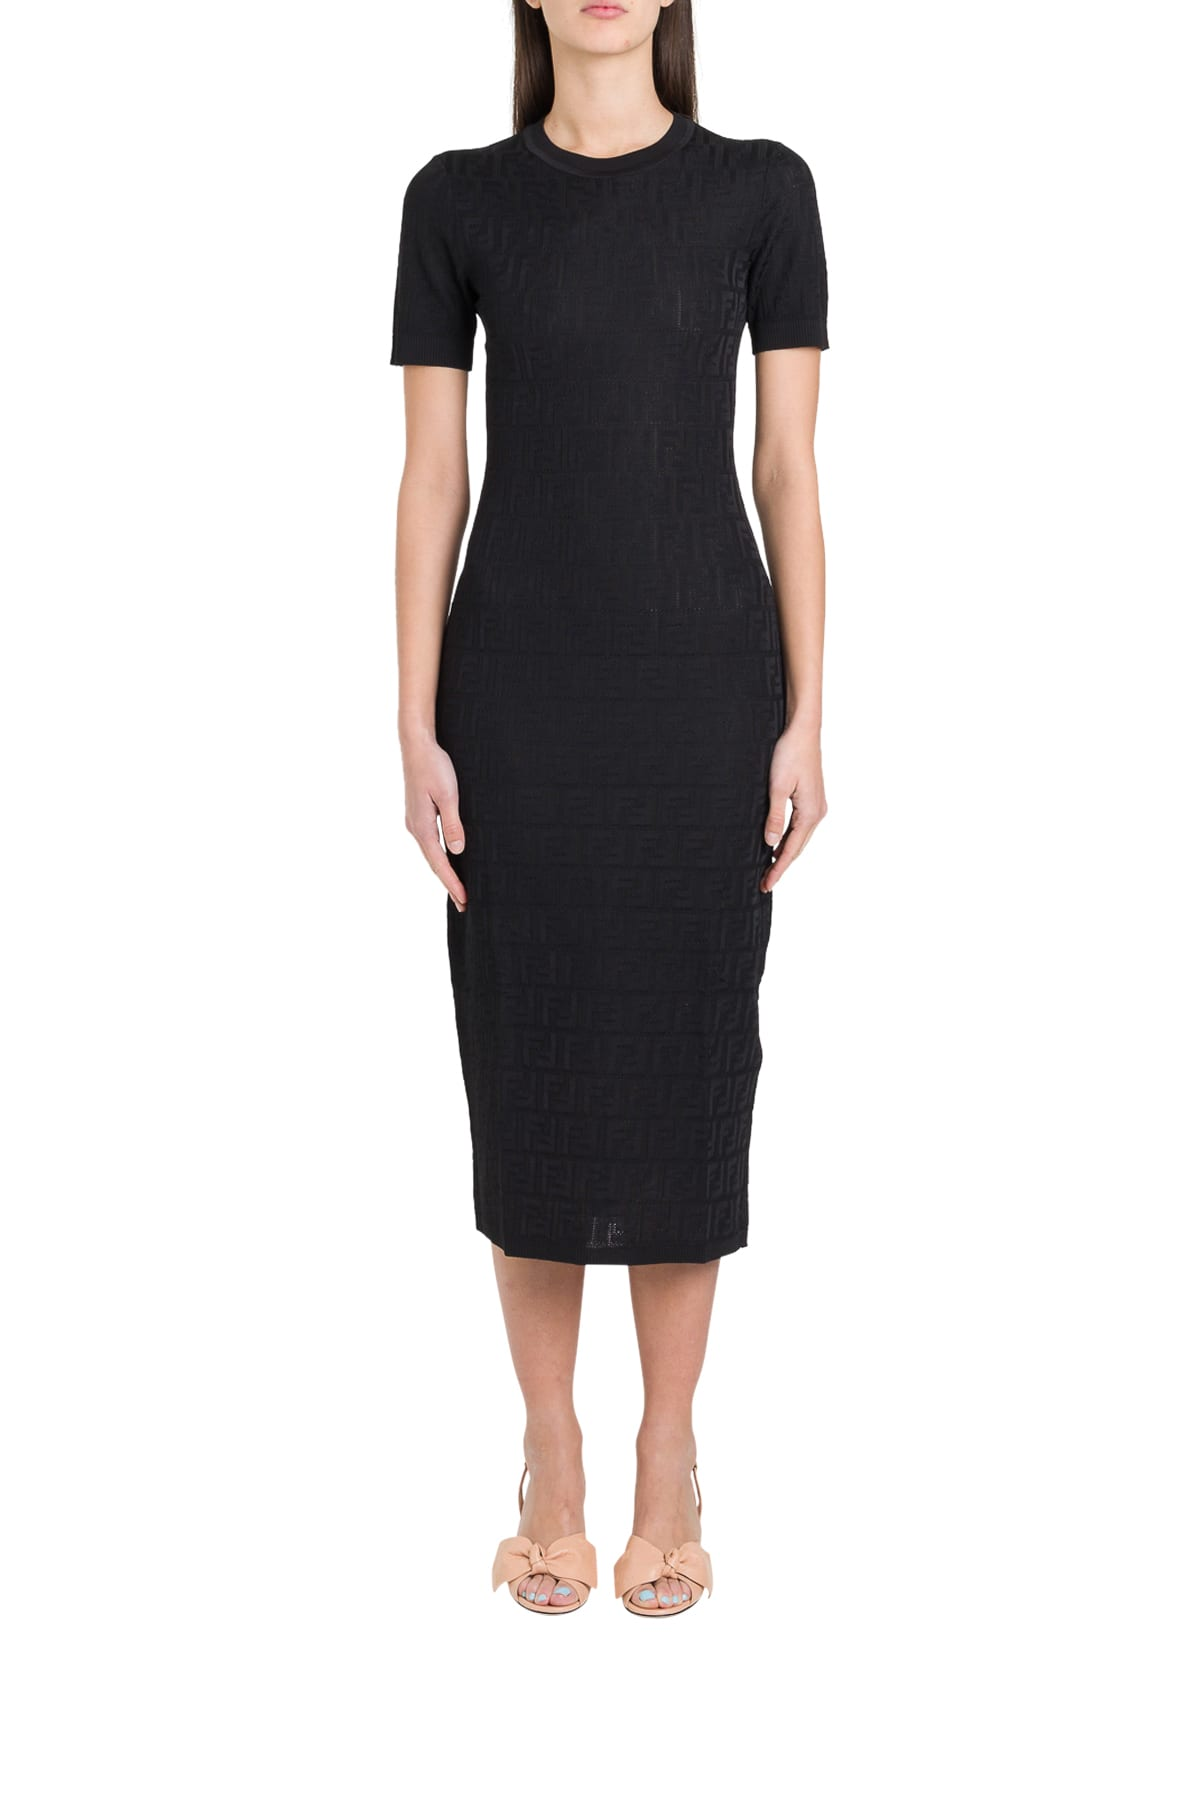 Buy Fendi Ff Longuette Dress online, shop Fendi with free shipping